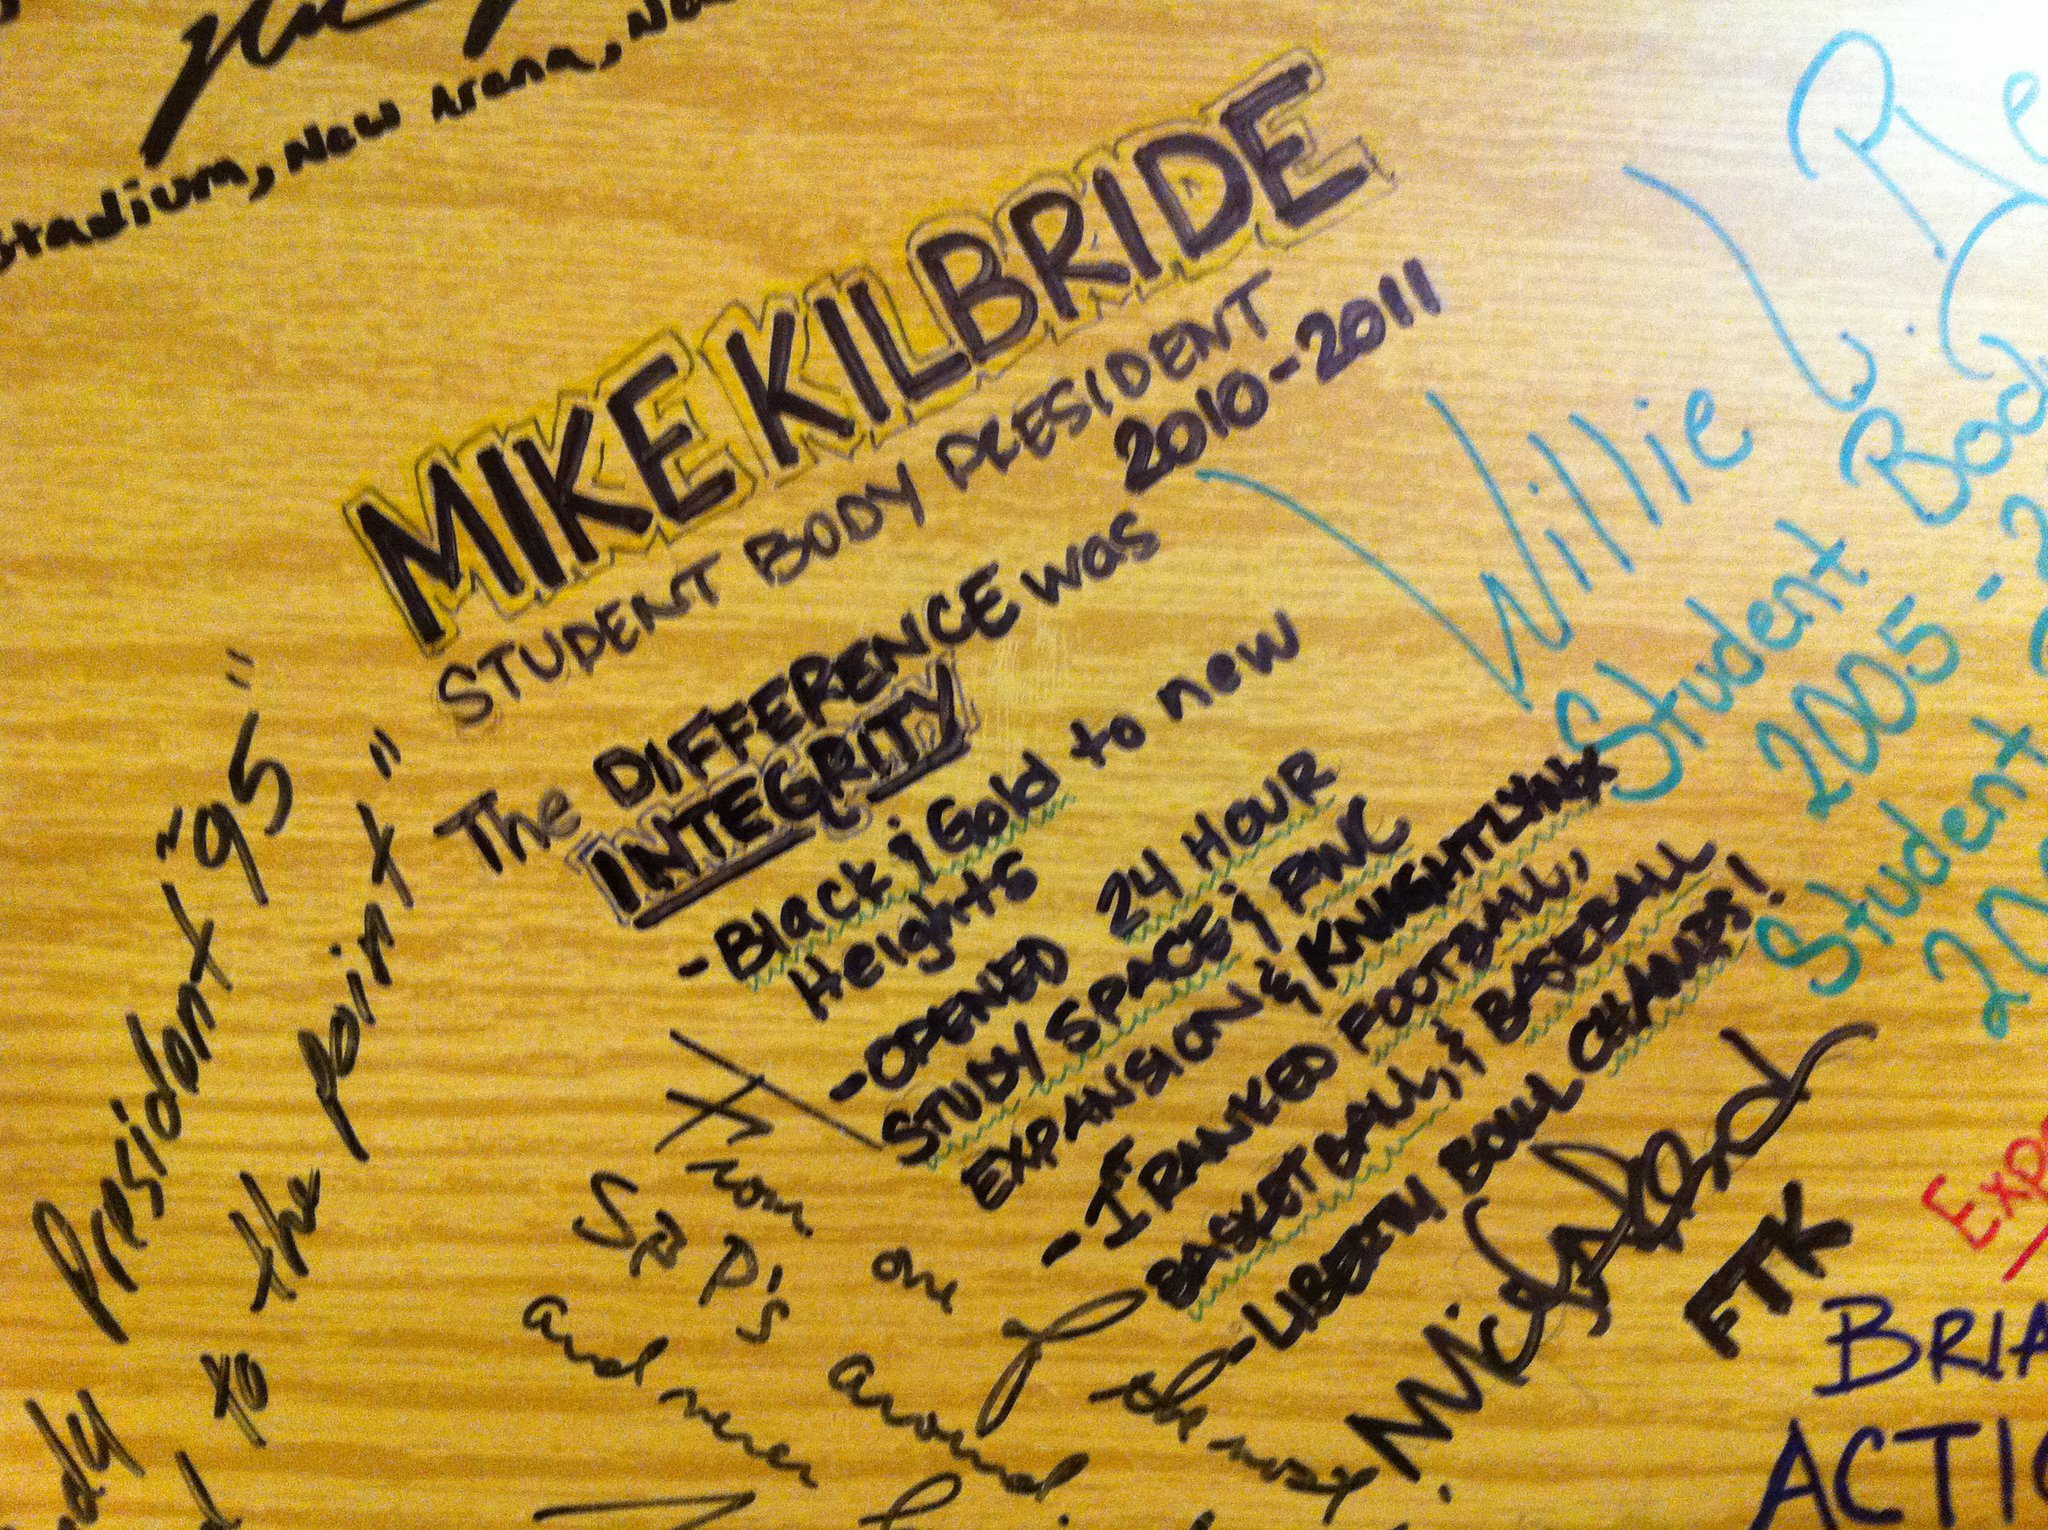 UCF Administration Owes Mike Kilbride an Apology for Failing Him, SGA